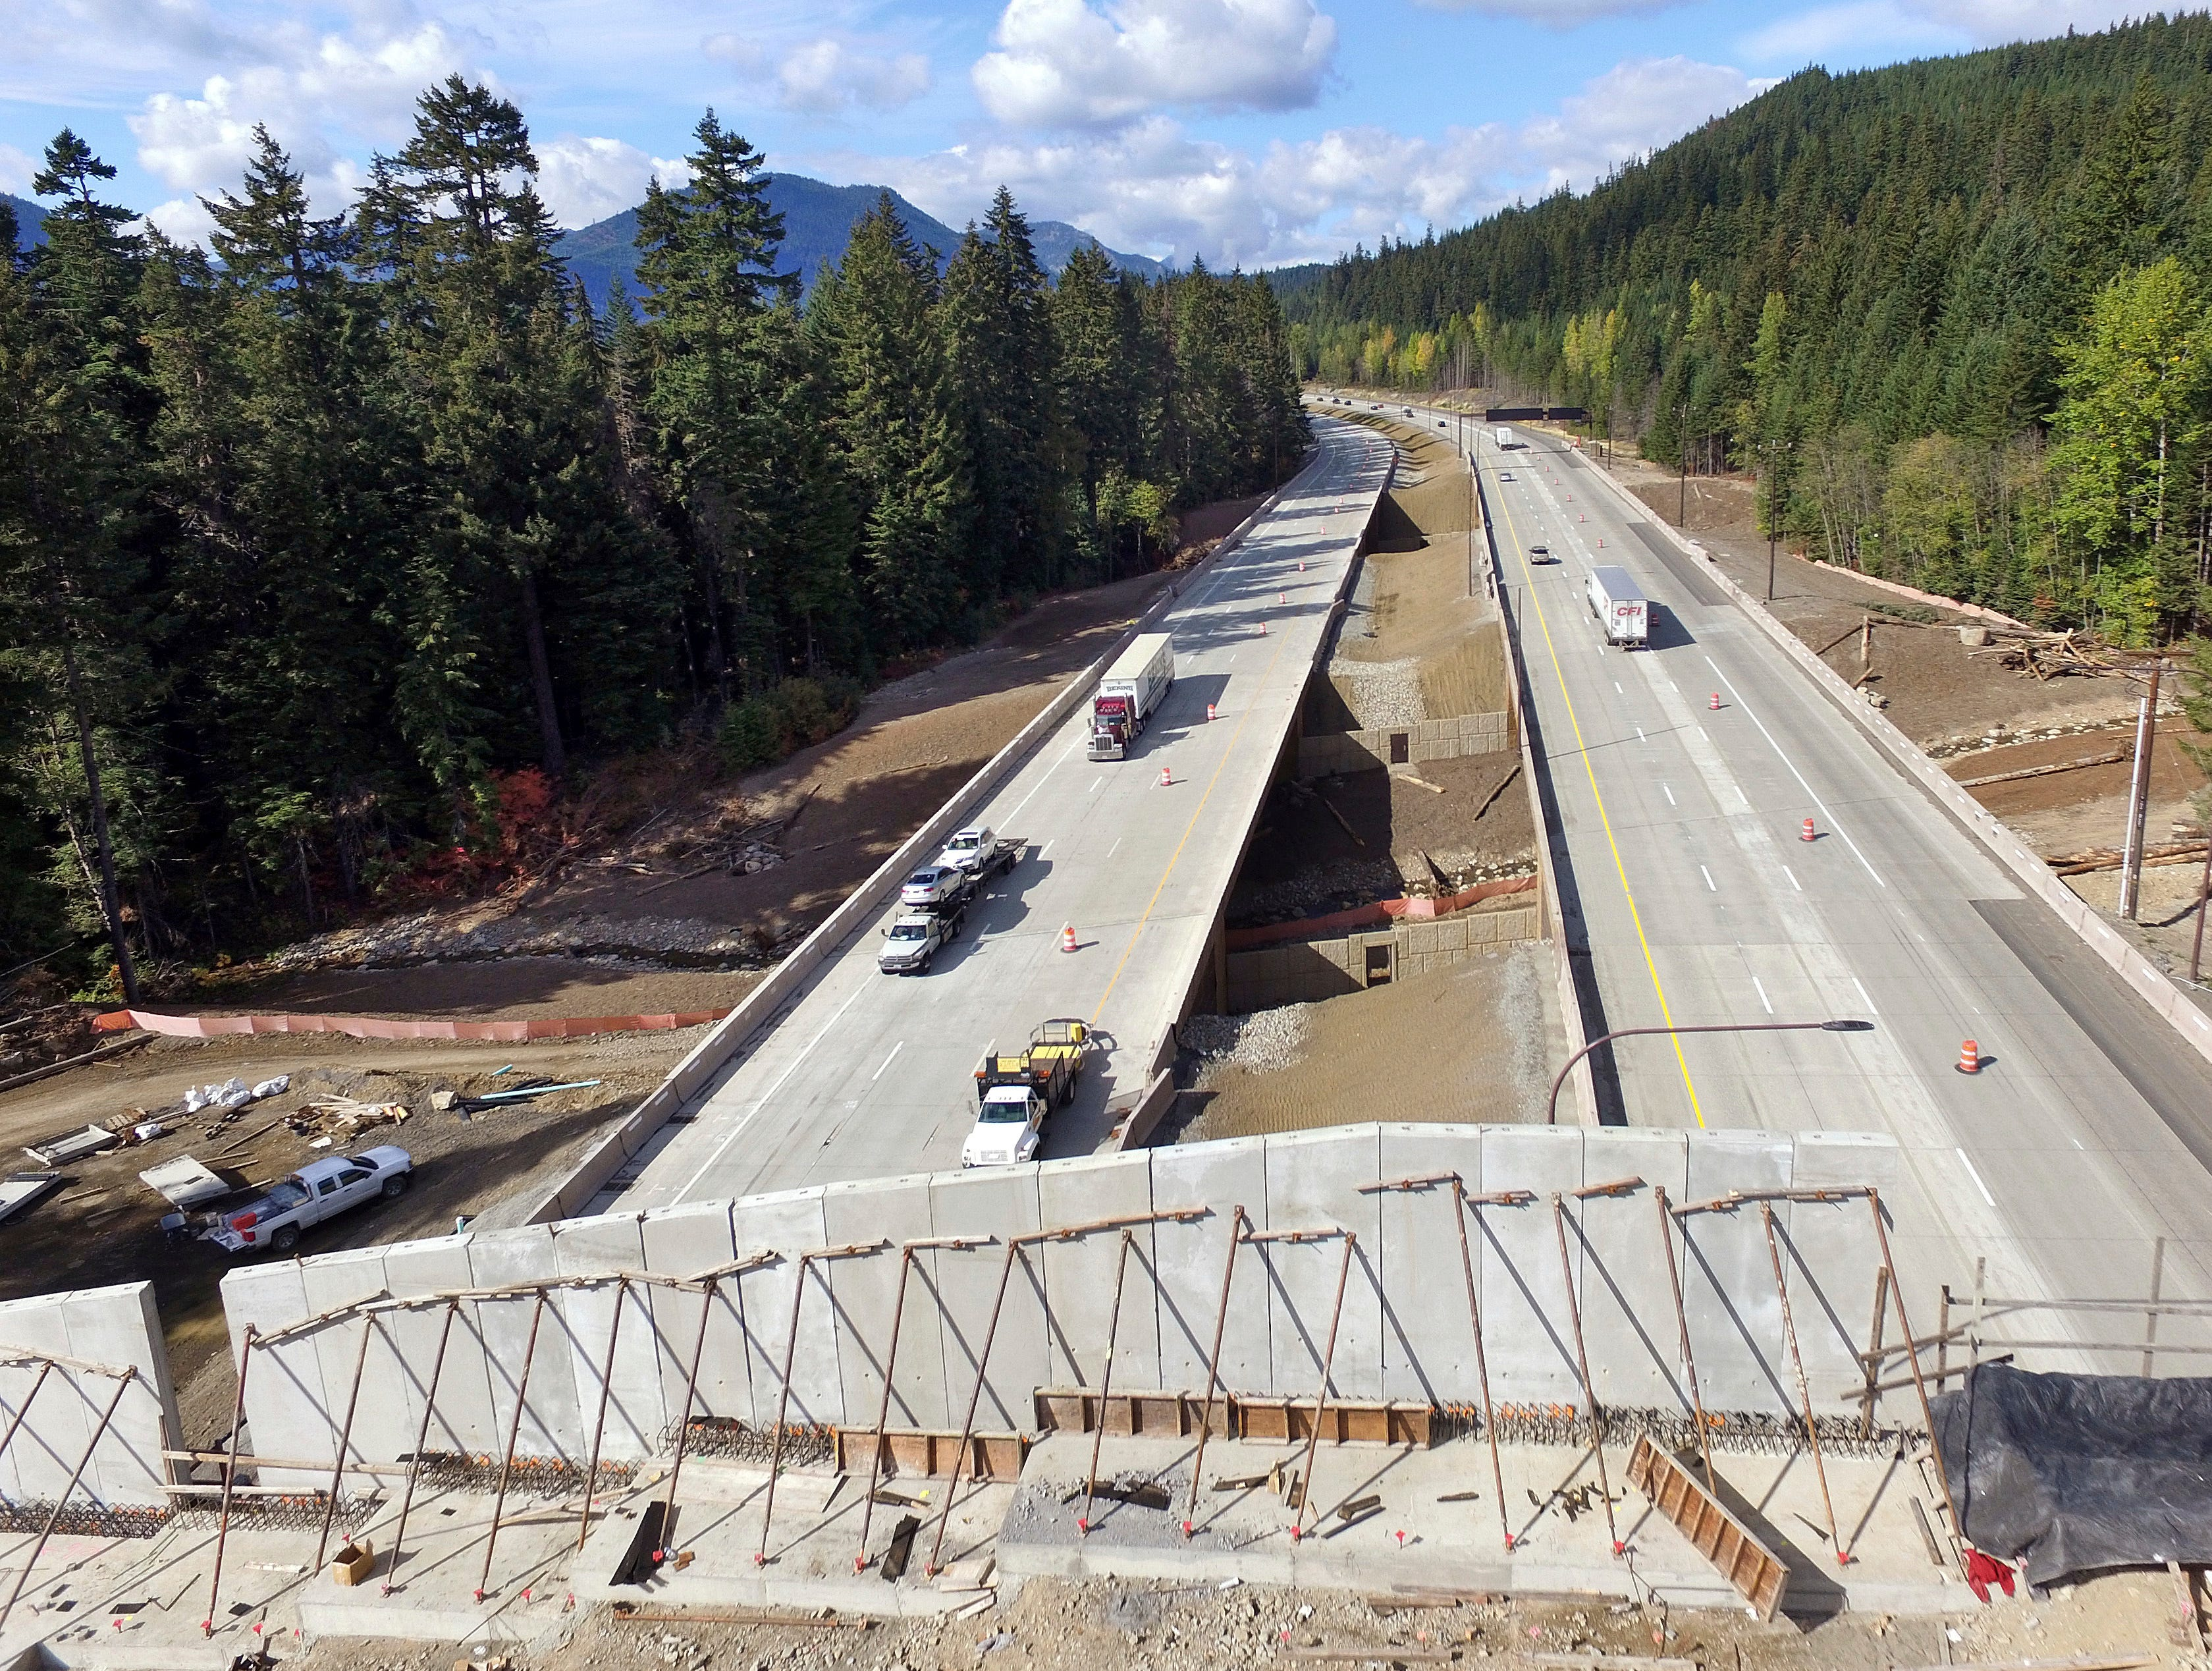 Interstate 90 traffic passes beneath a wildlife bridge under construction on Snoqualmie Pass. The stretch of highway crossing the Cascade Mountains cuts through old growth forest and wetlands, creating a dangerous border for wildlife everything from an elk down to a small salamander. The new crossing gives animals in these mountains a safer option for crossing the road: They'll be able to go above it.